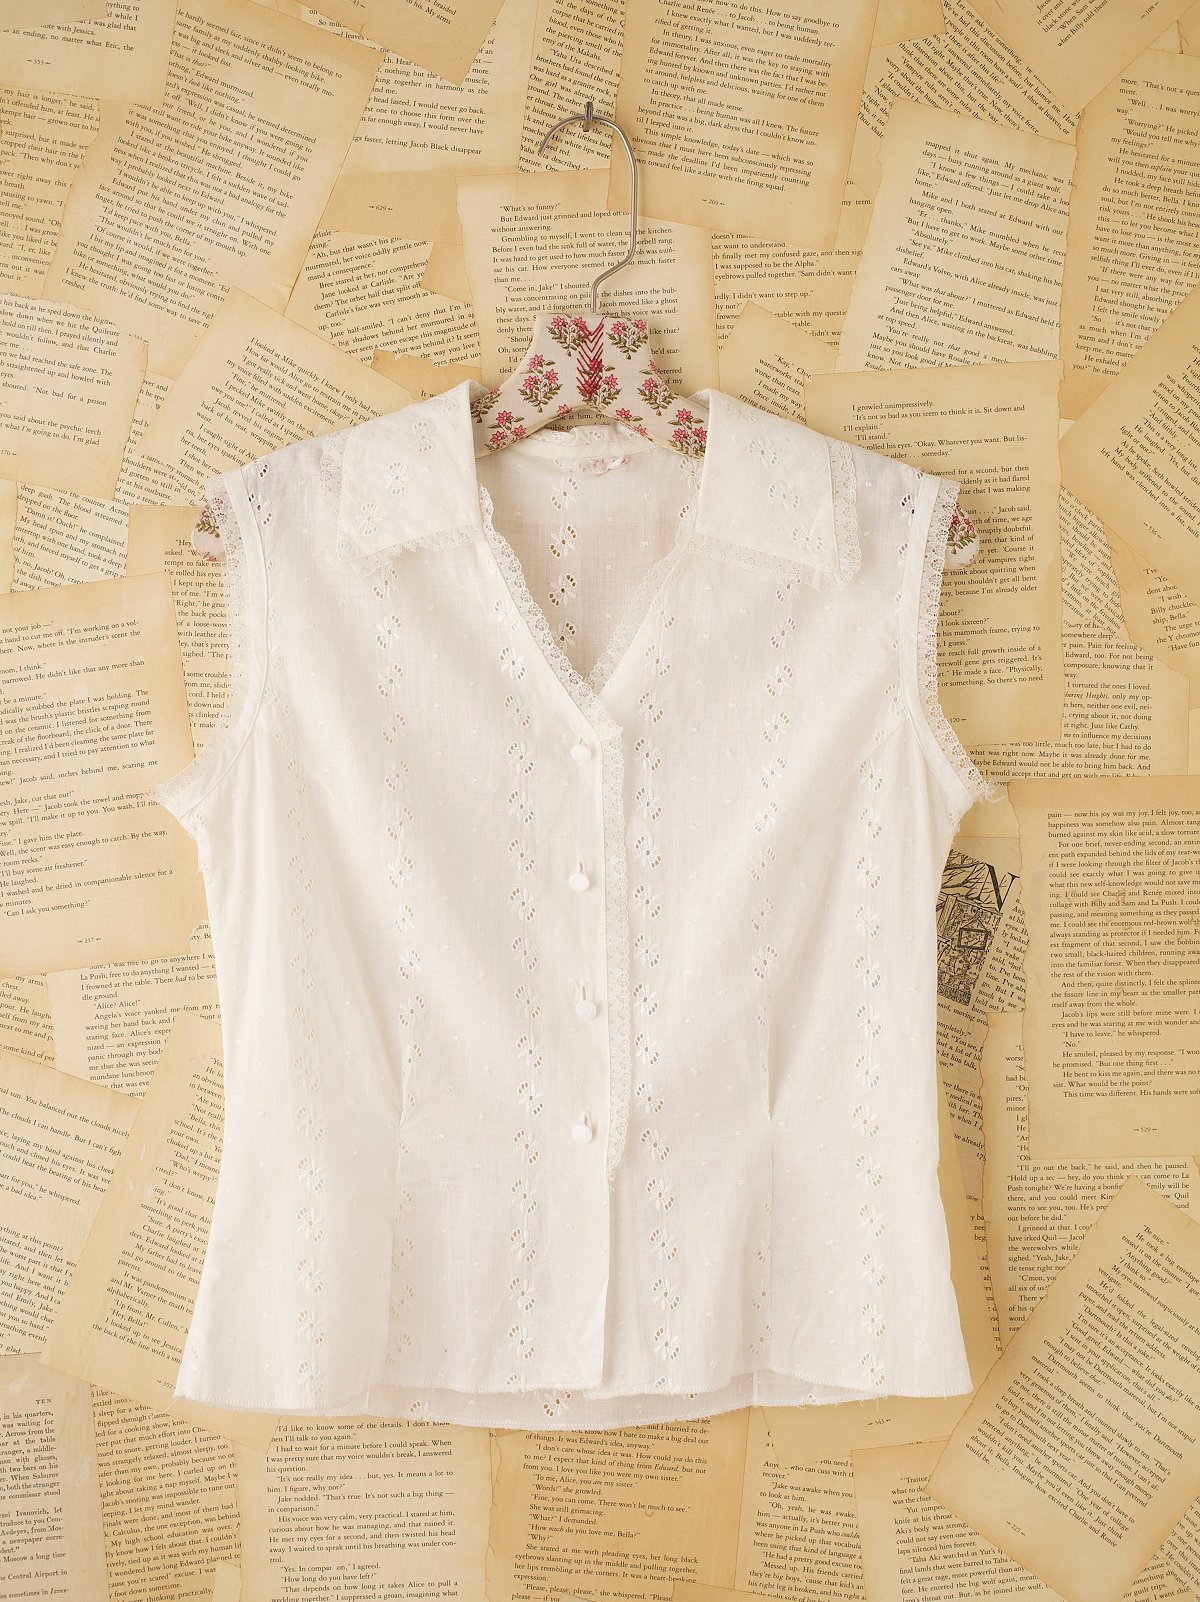 Vintage Sleeveless Lace Shirt